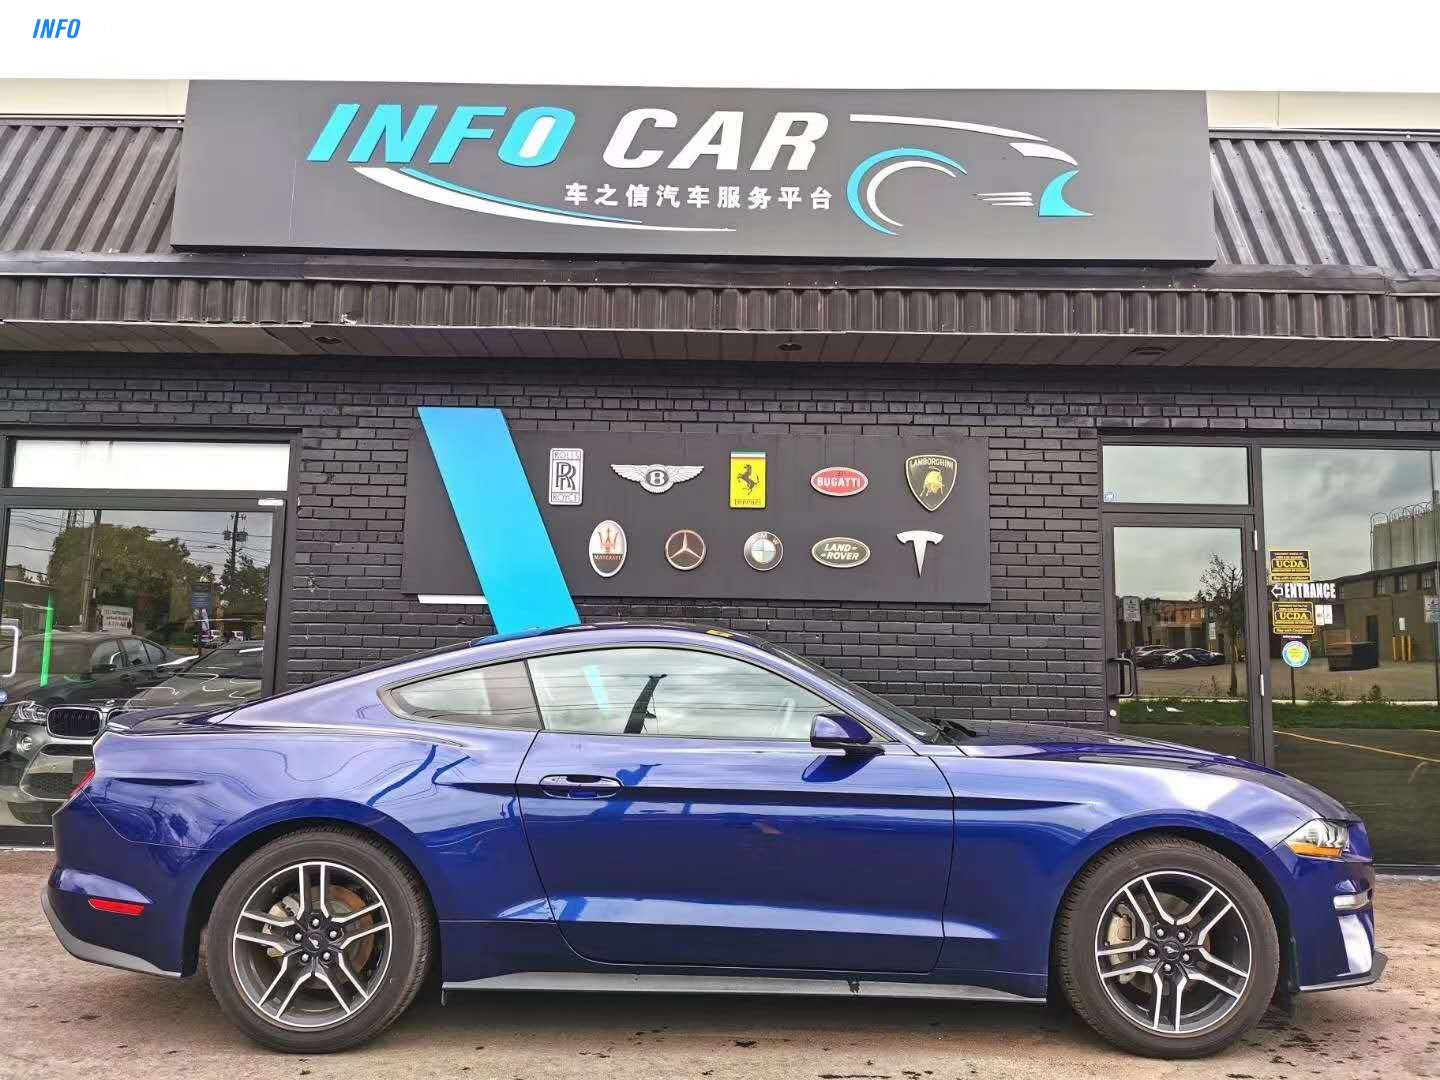 2020 Ford Mustang ECOBOOST - INFOCAR - Toronto's Most Comprehensive New and Used Auto Trading Platform